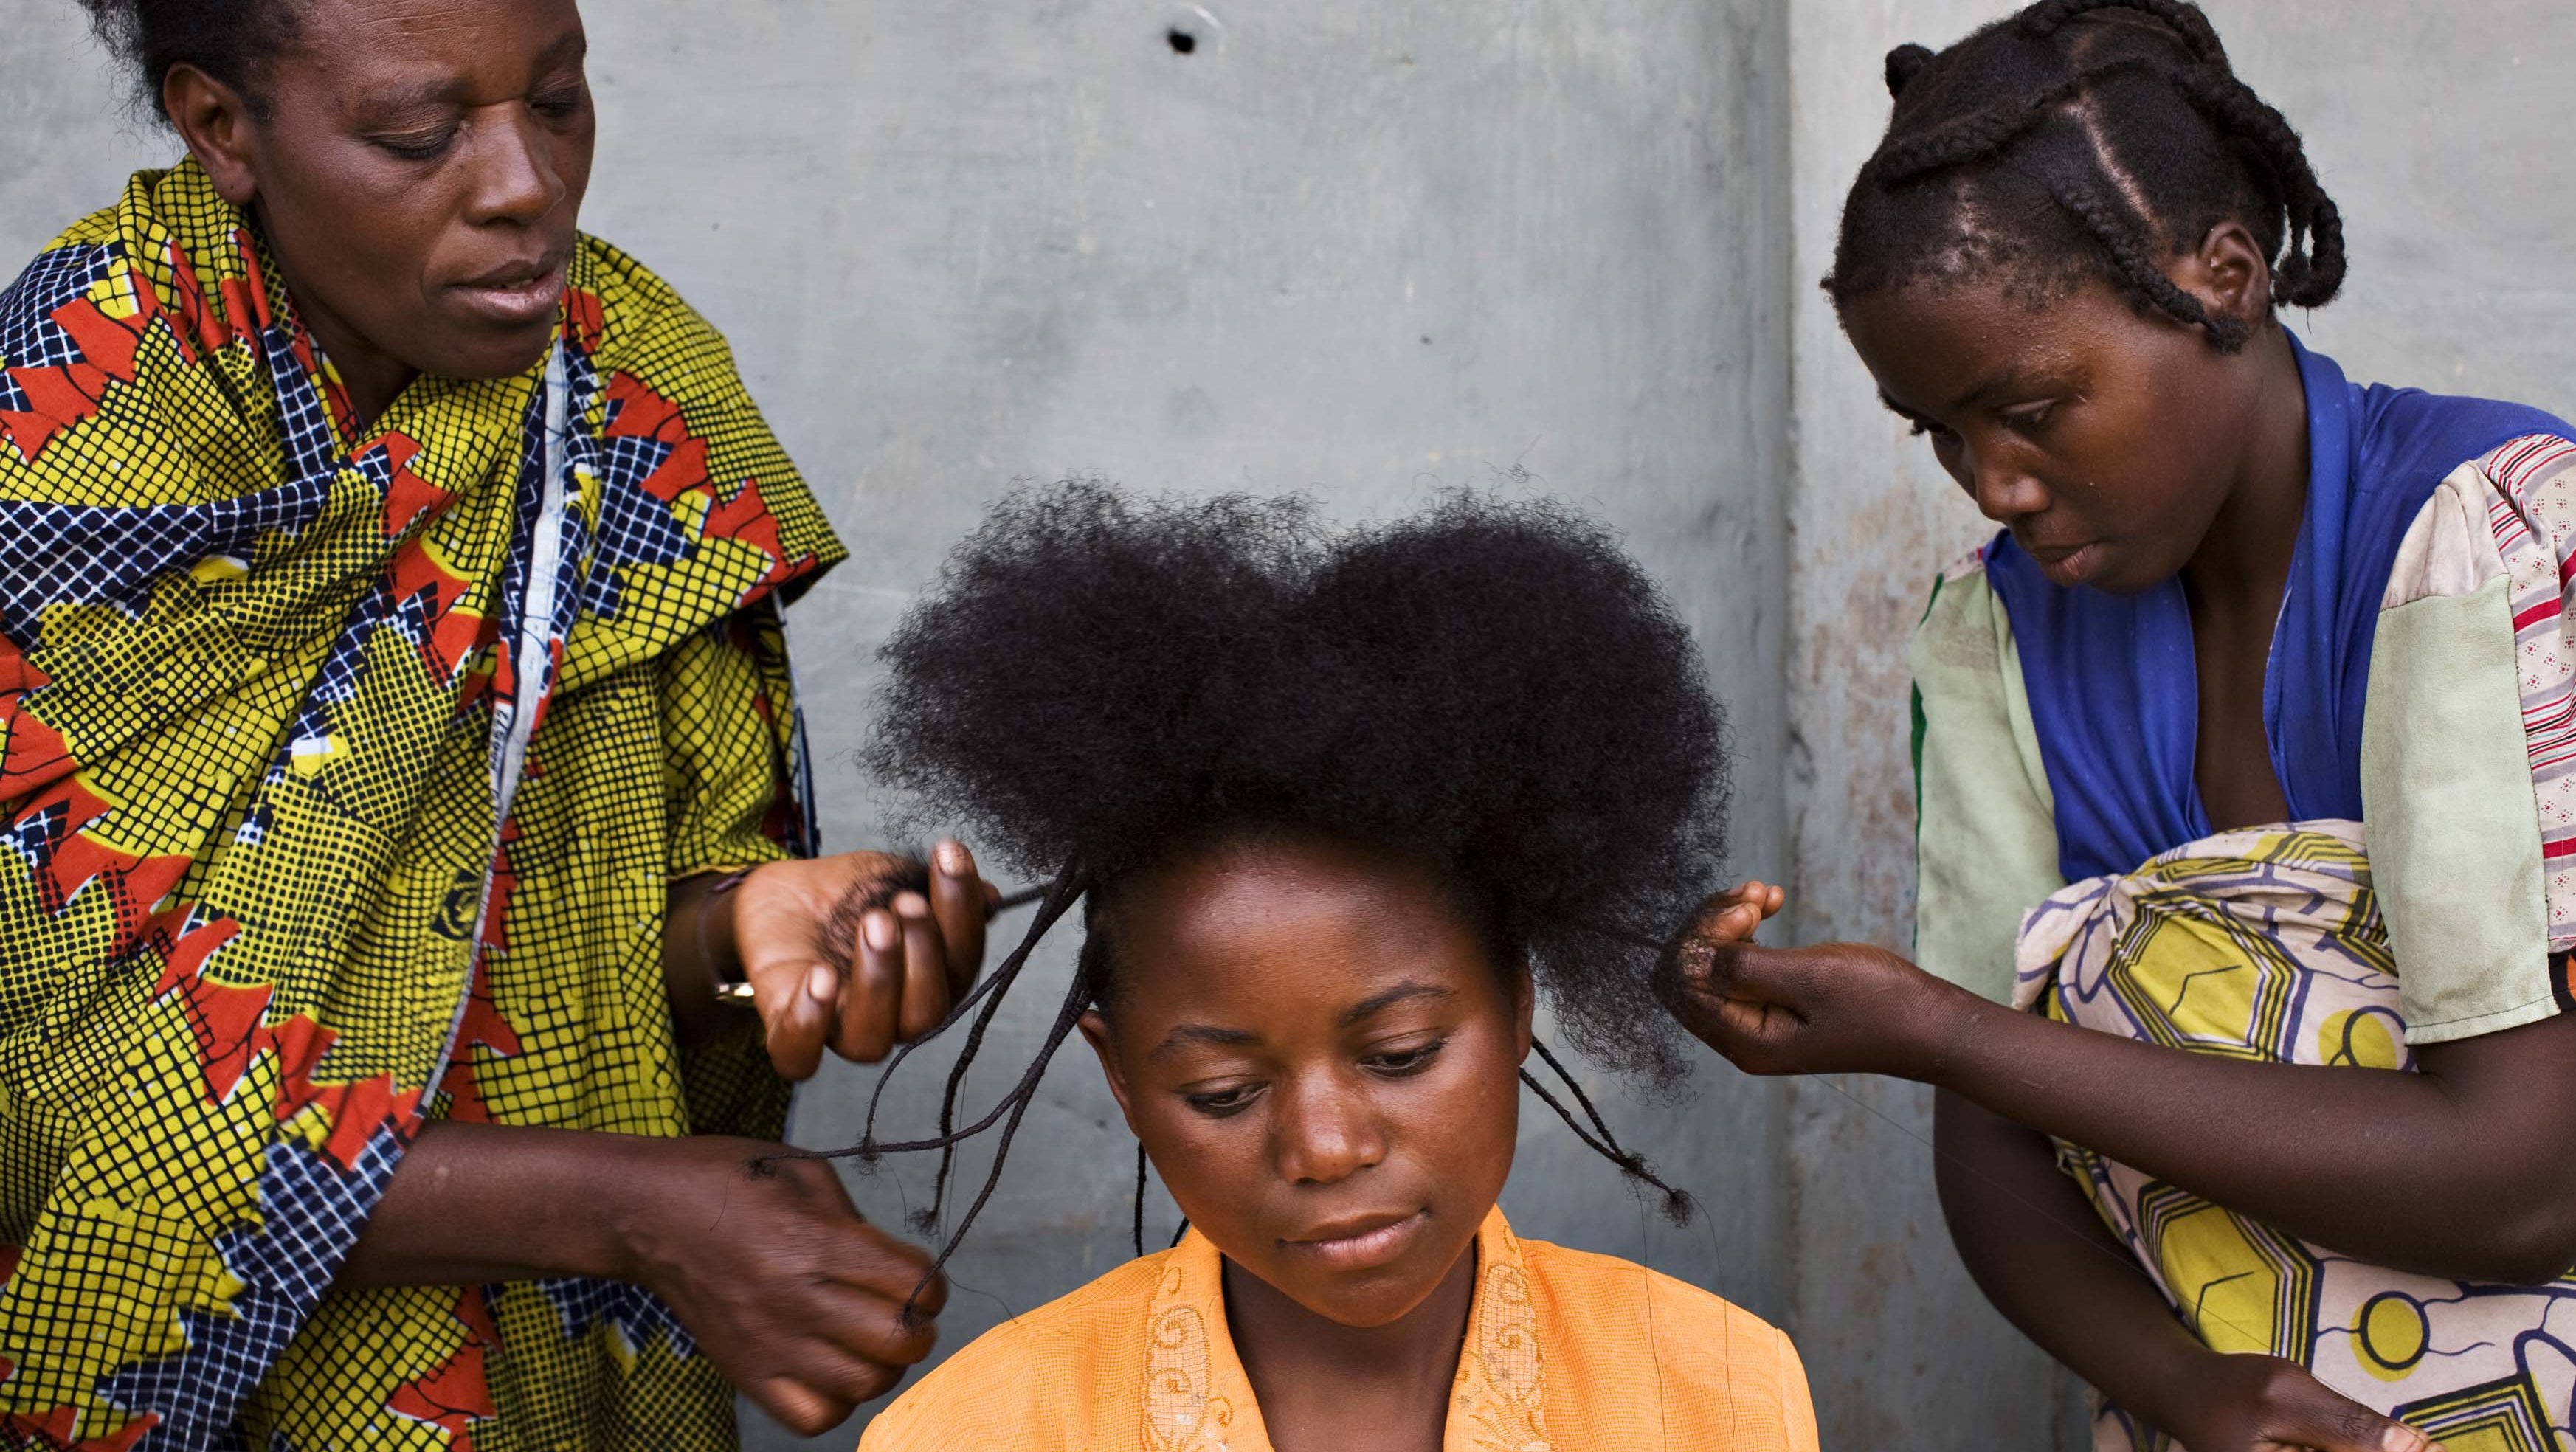 Black Hair Myths From Slavery To Colonialism School Rules